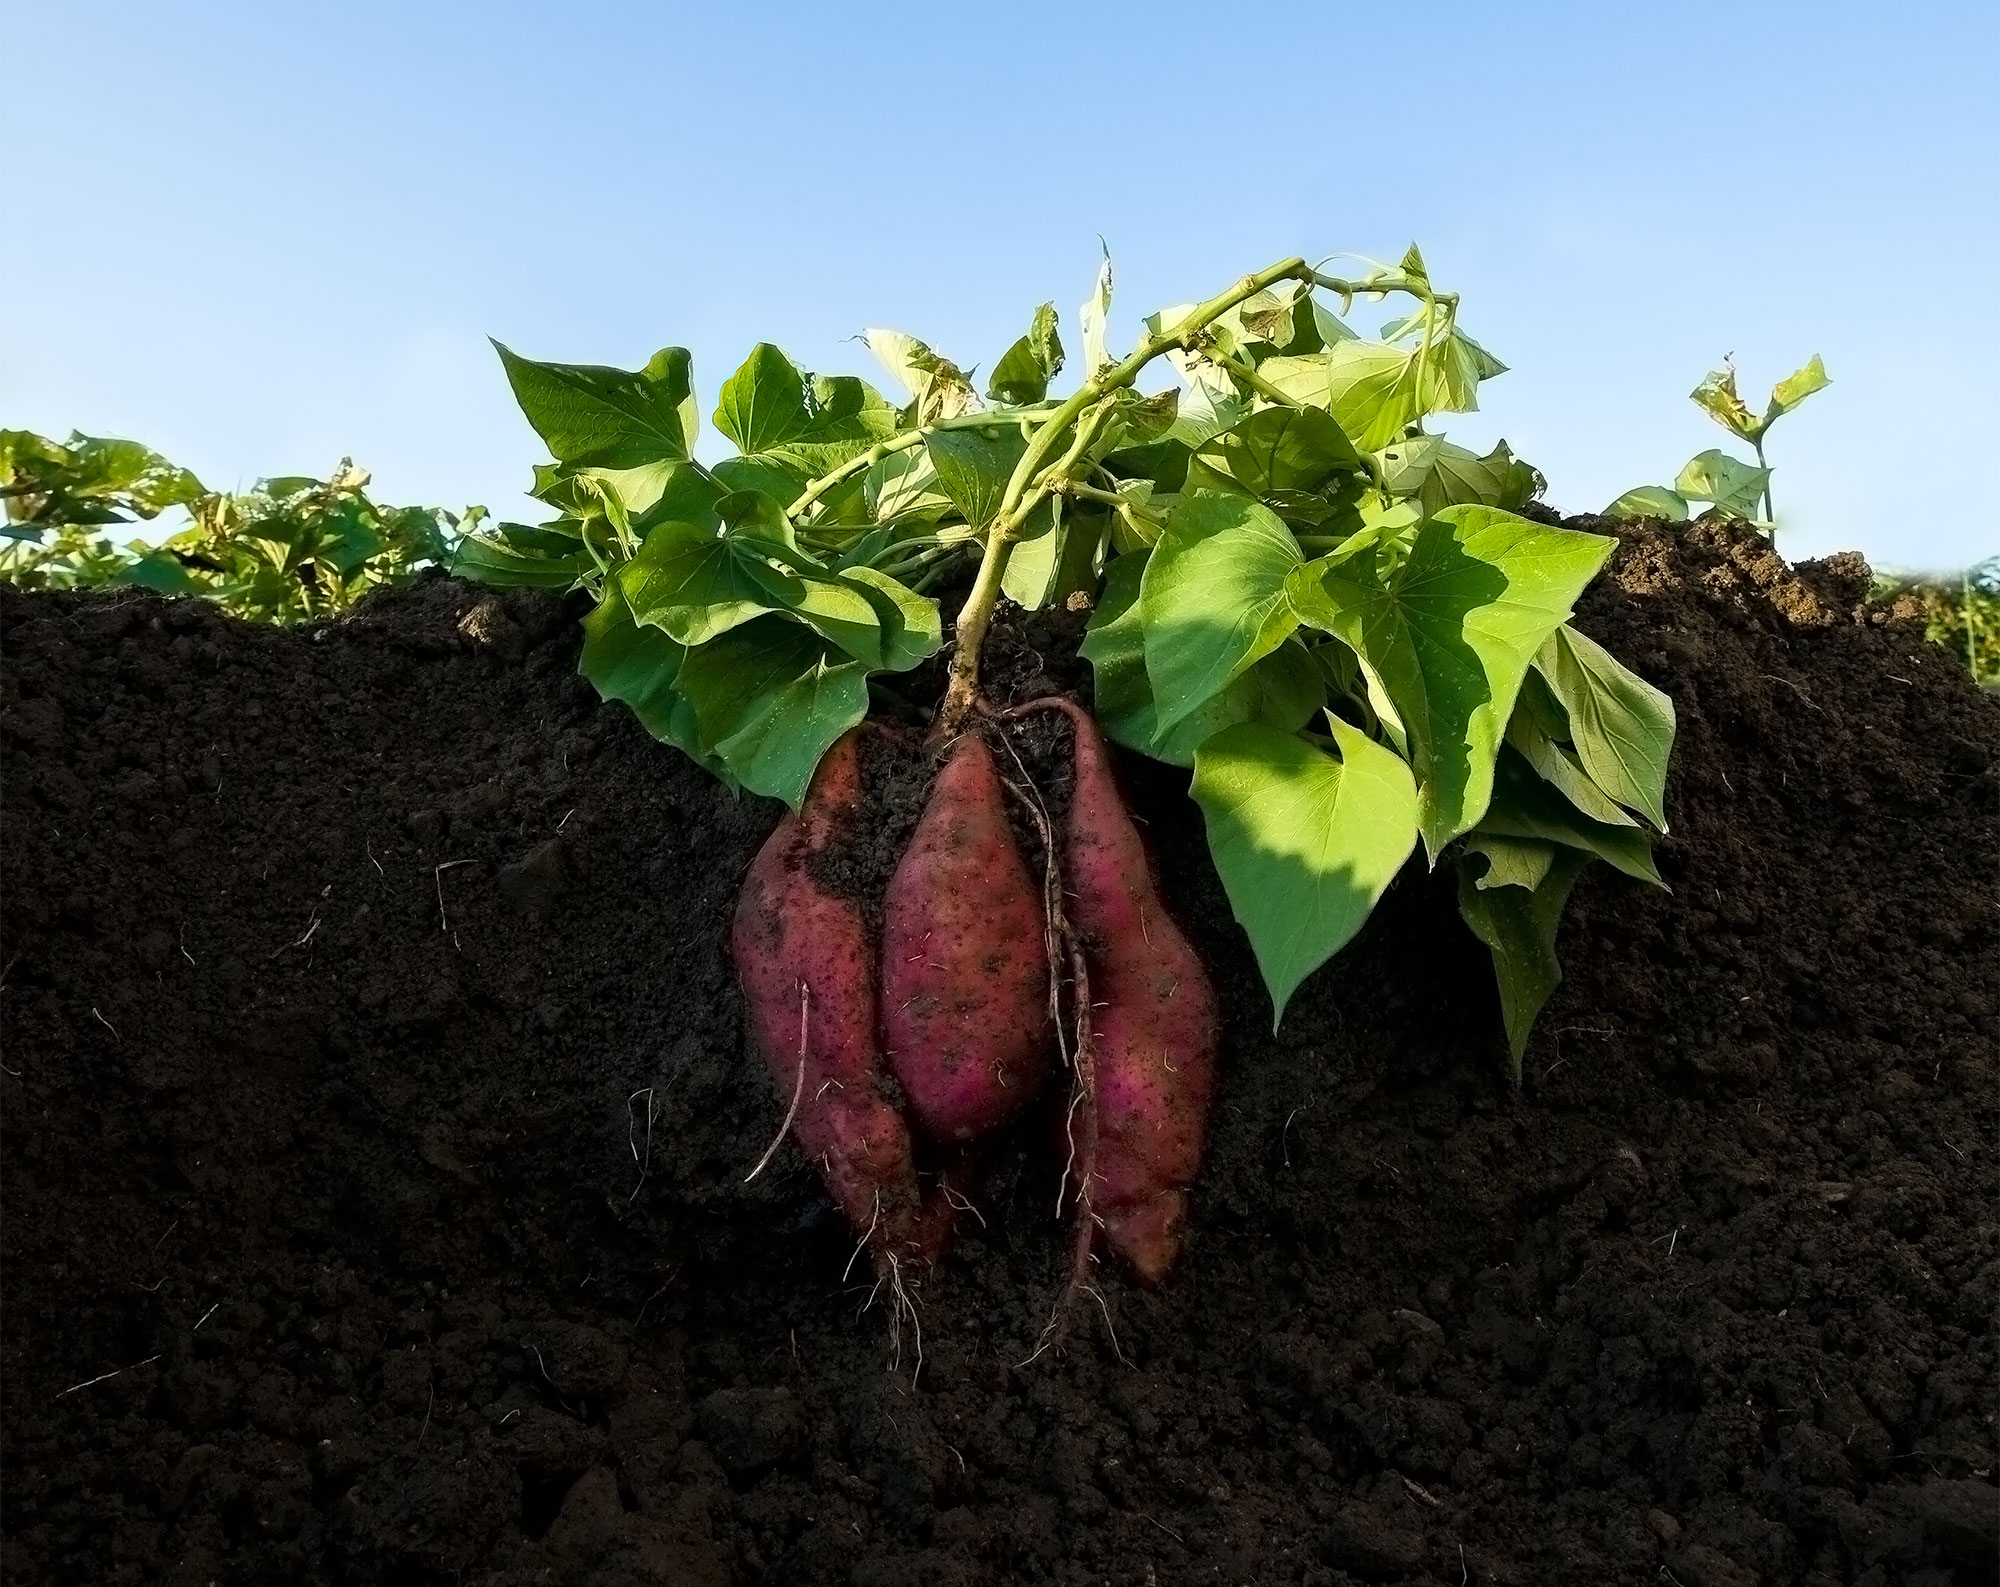 Sweet Potatoes are popping out of the soil!